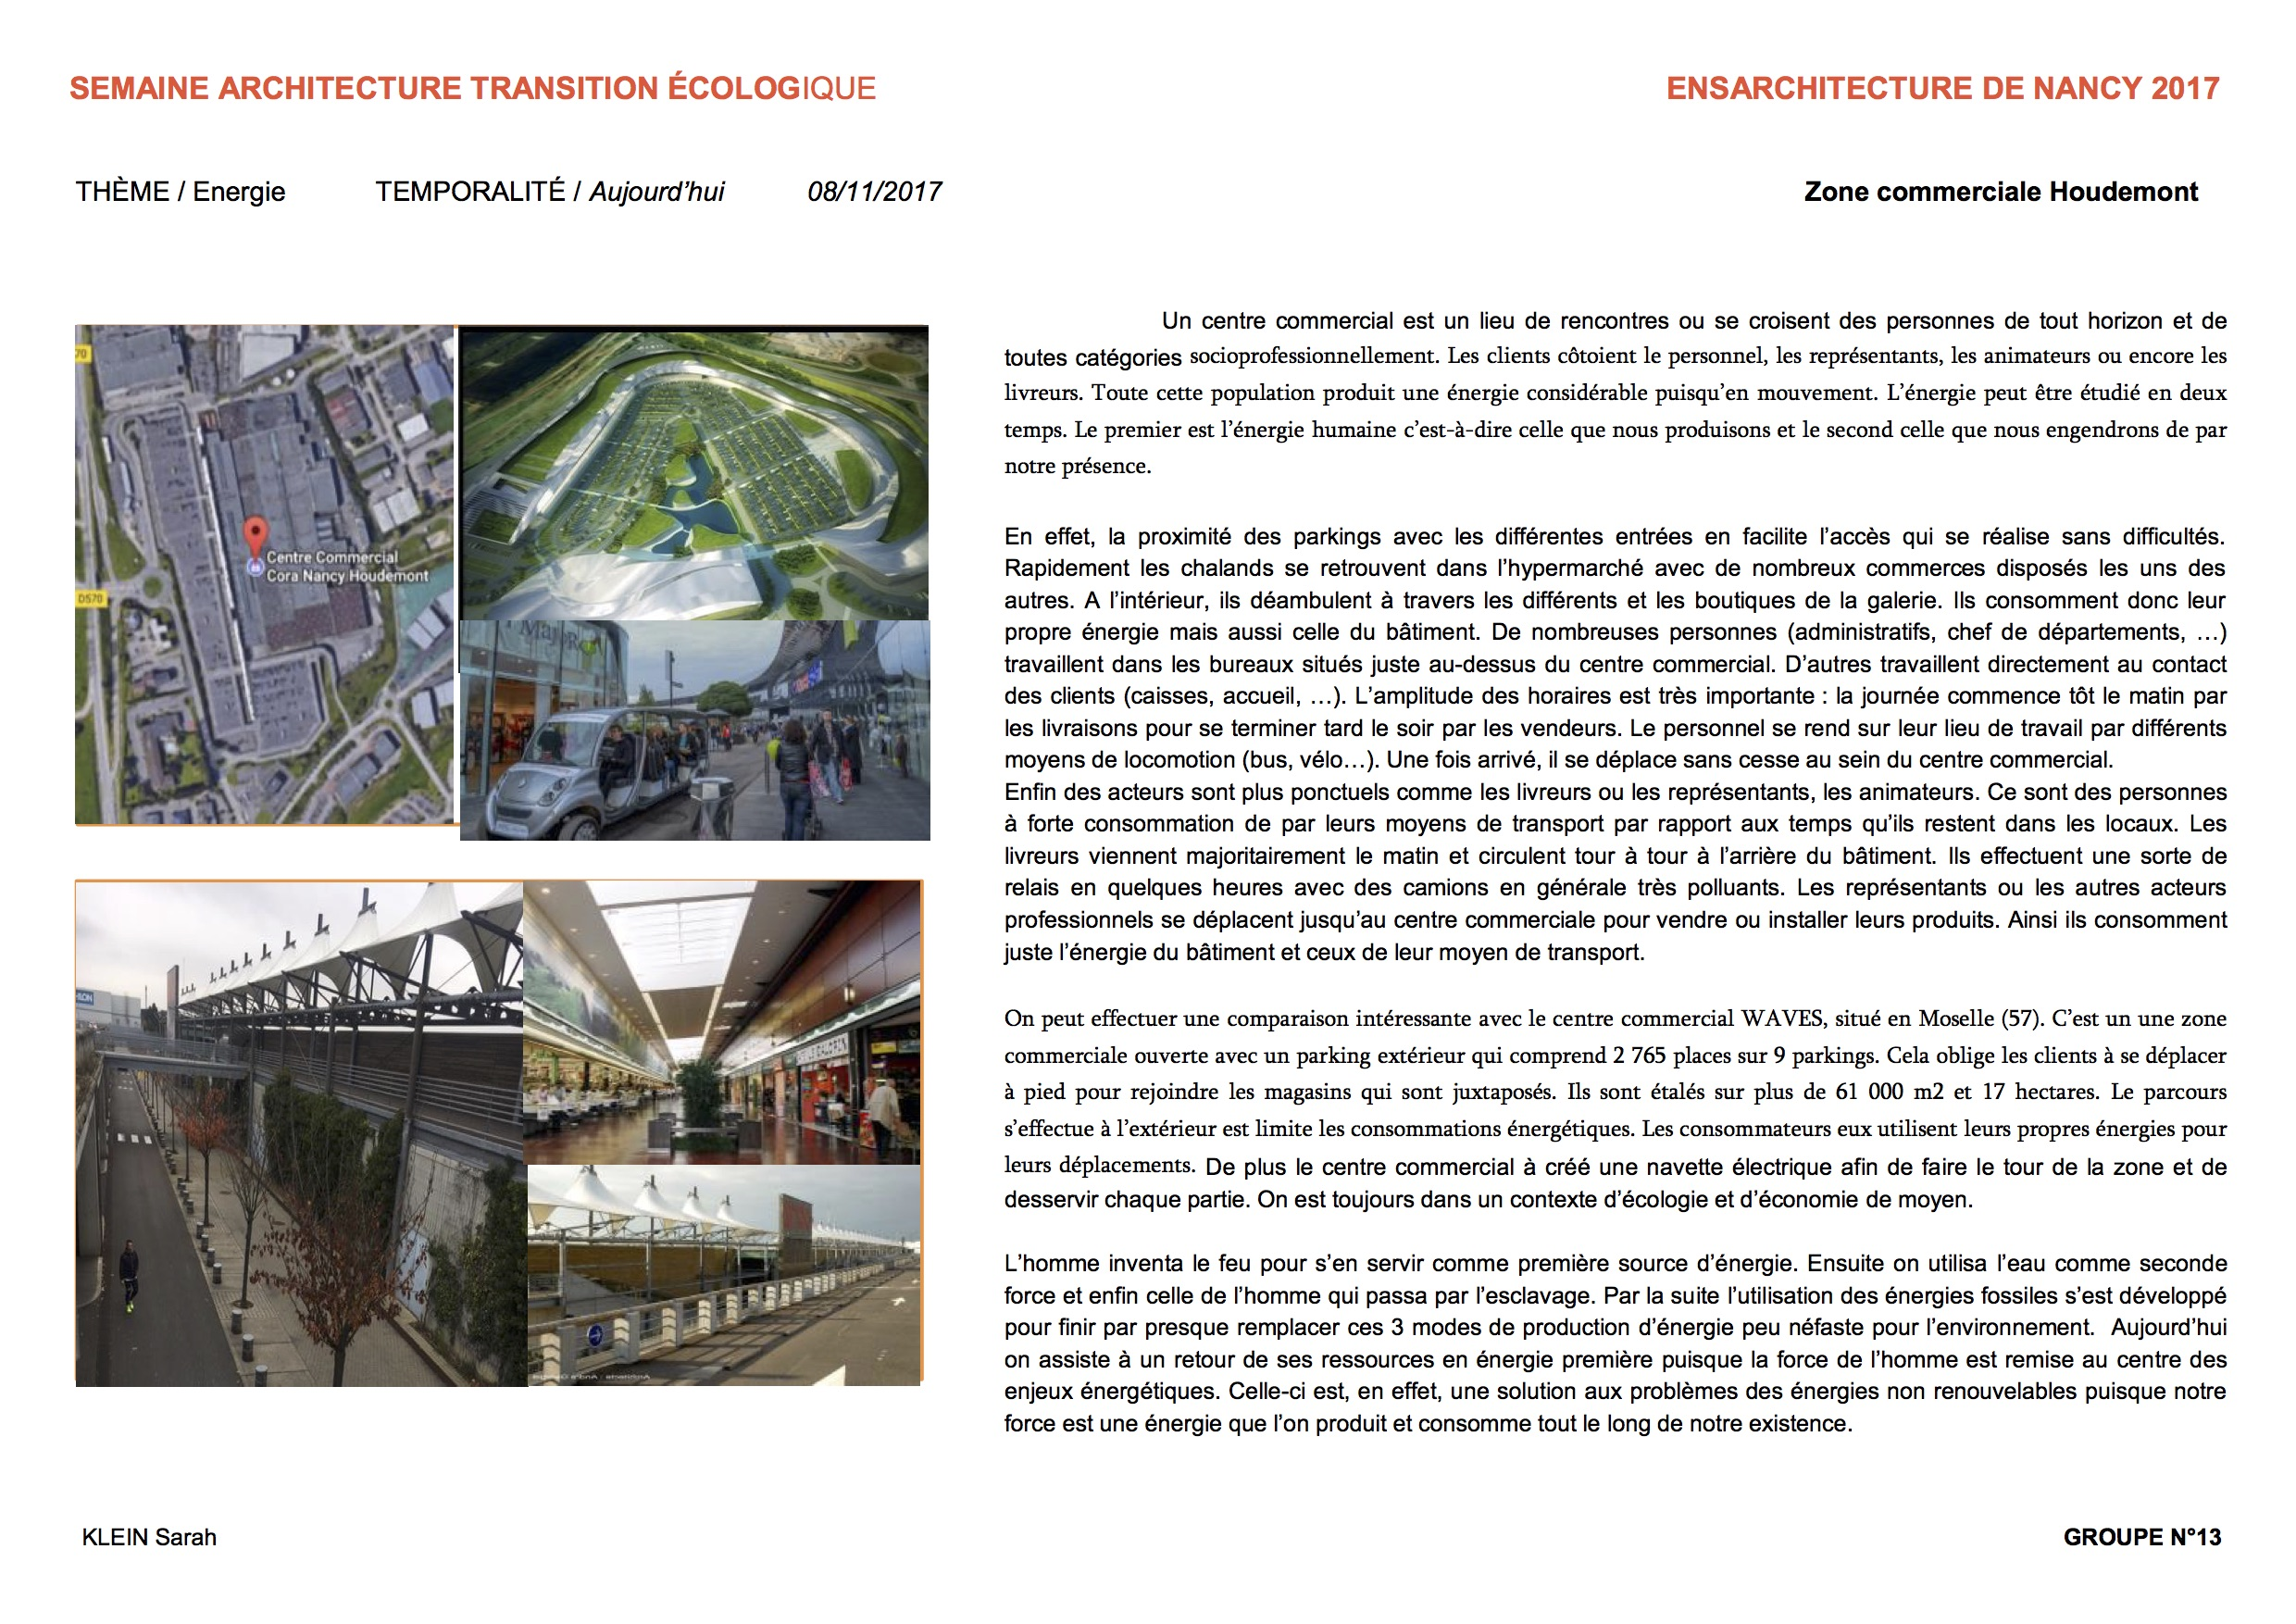 Energie 13 archives architecture transition ecologiquearchitecture transition ecologique - Zone commerciale nancy ...